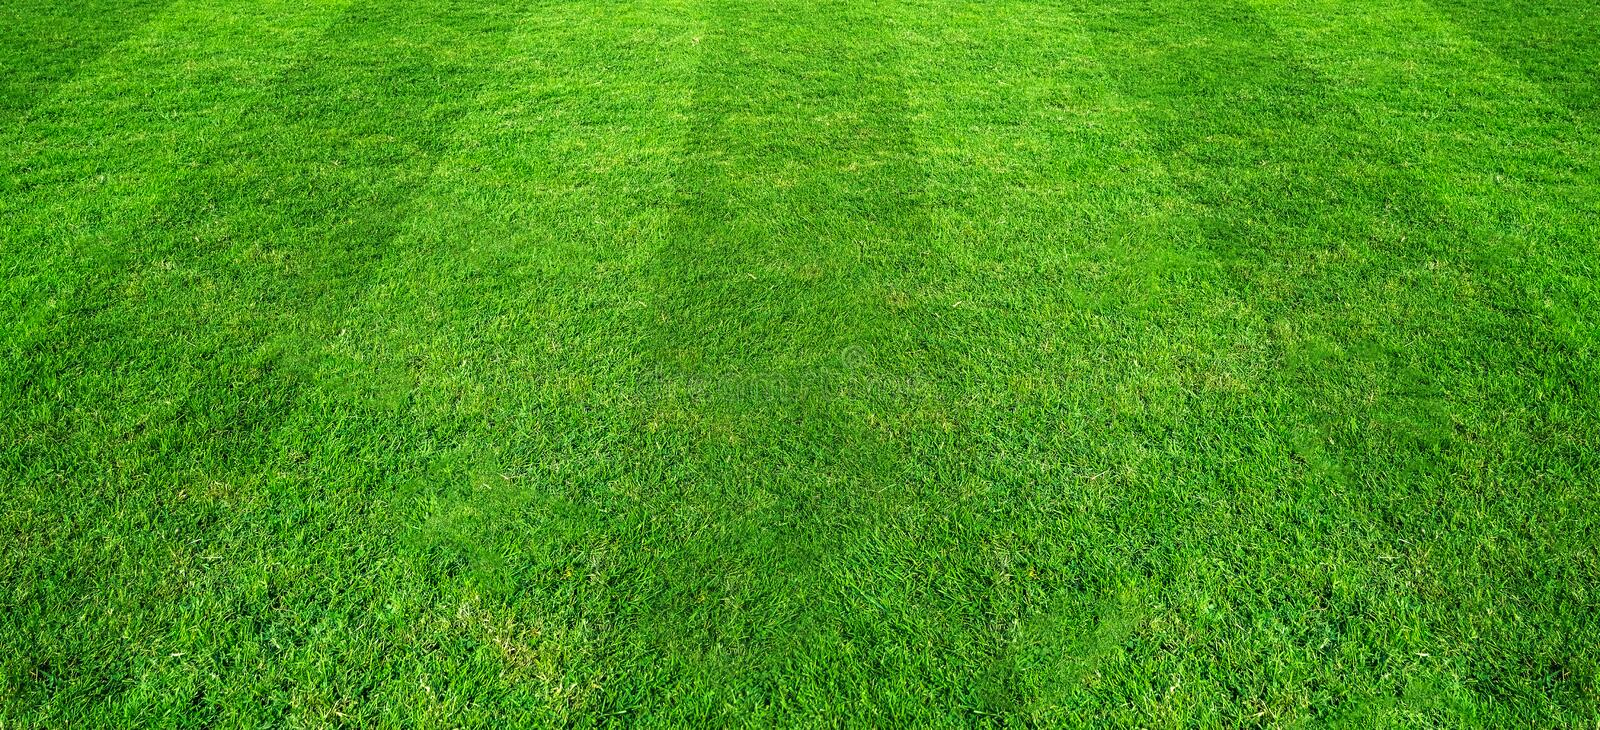 Green grass field pattern background for soccer and football sports. Green lawn pattern and texture for background. Green grass field pattern background for royalty free stock photo